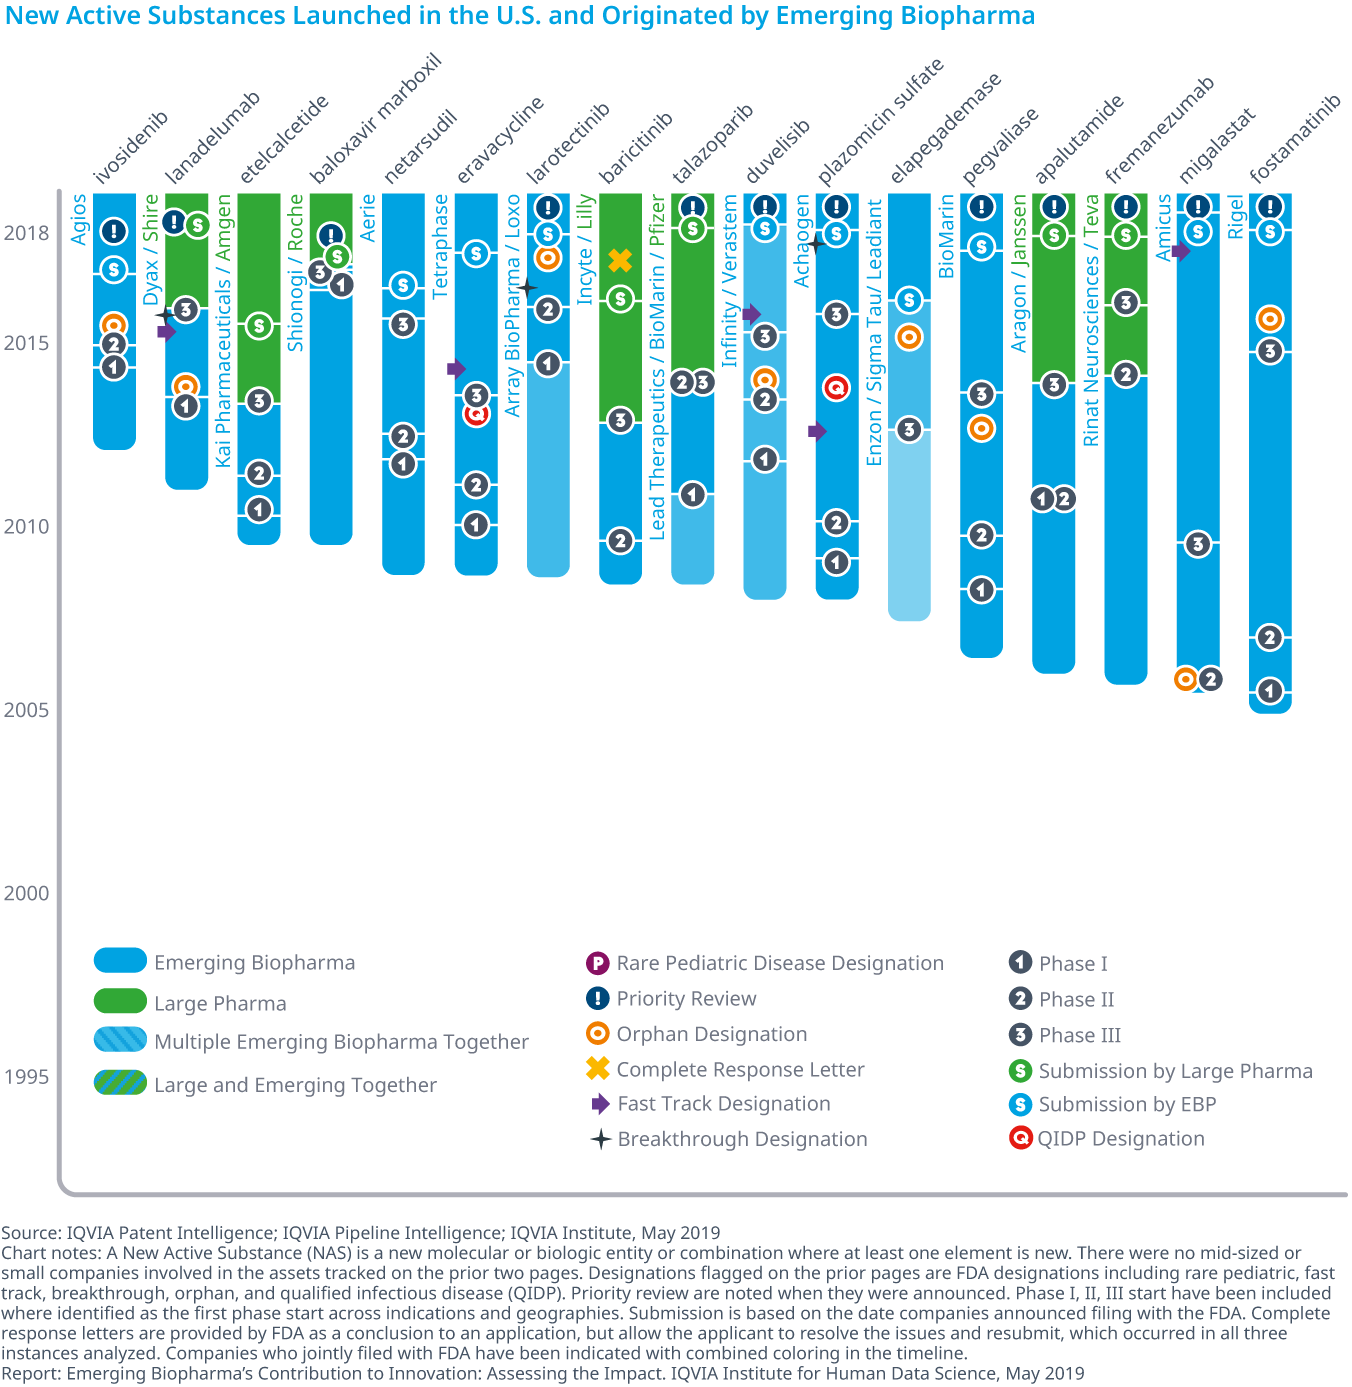 Chart 16A: New Active Substances Launched in the U.S. and Originated by Emerging Biopharma